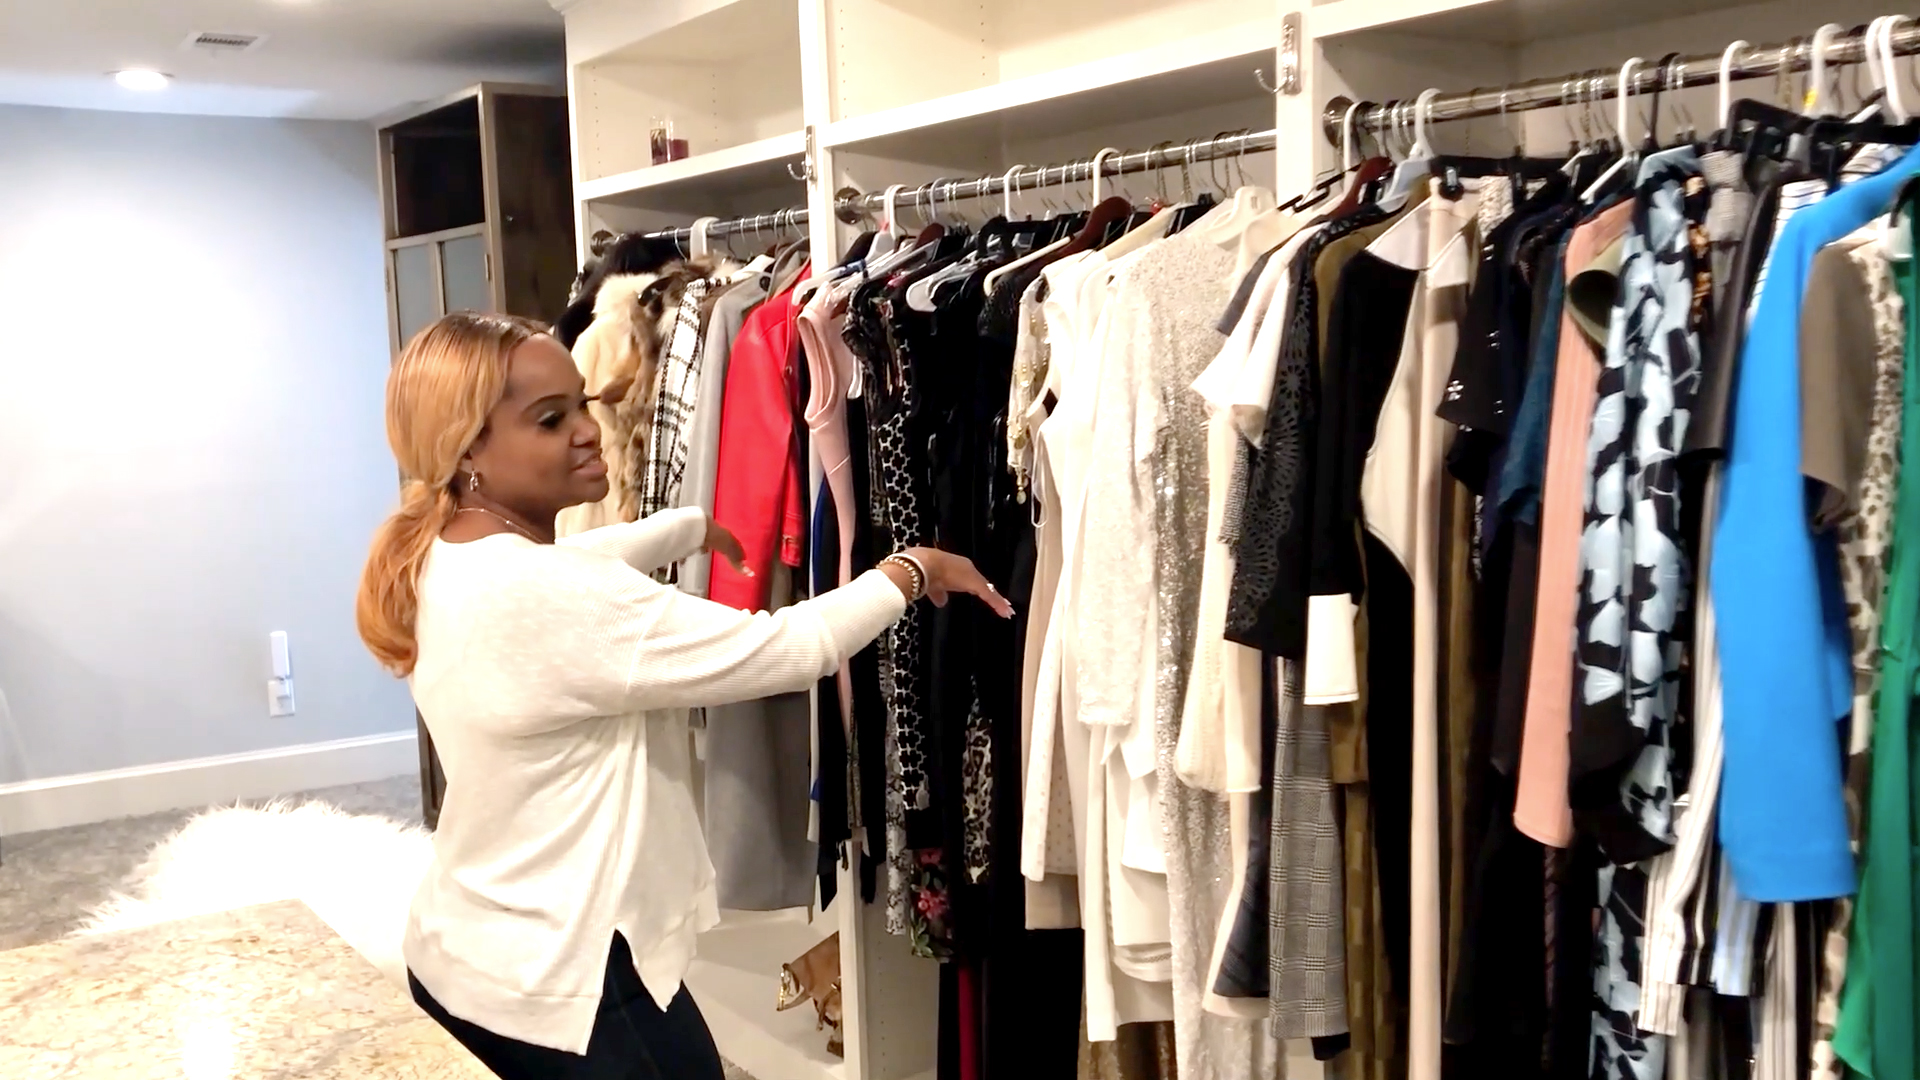 Heavenly Kimes is Taking You Inside Her Three-Story Closet